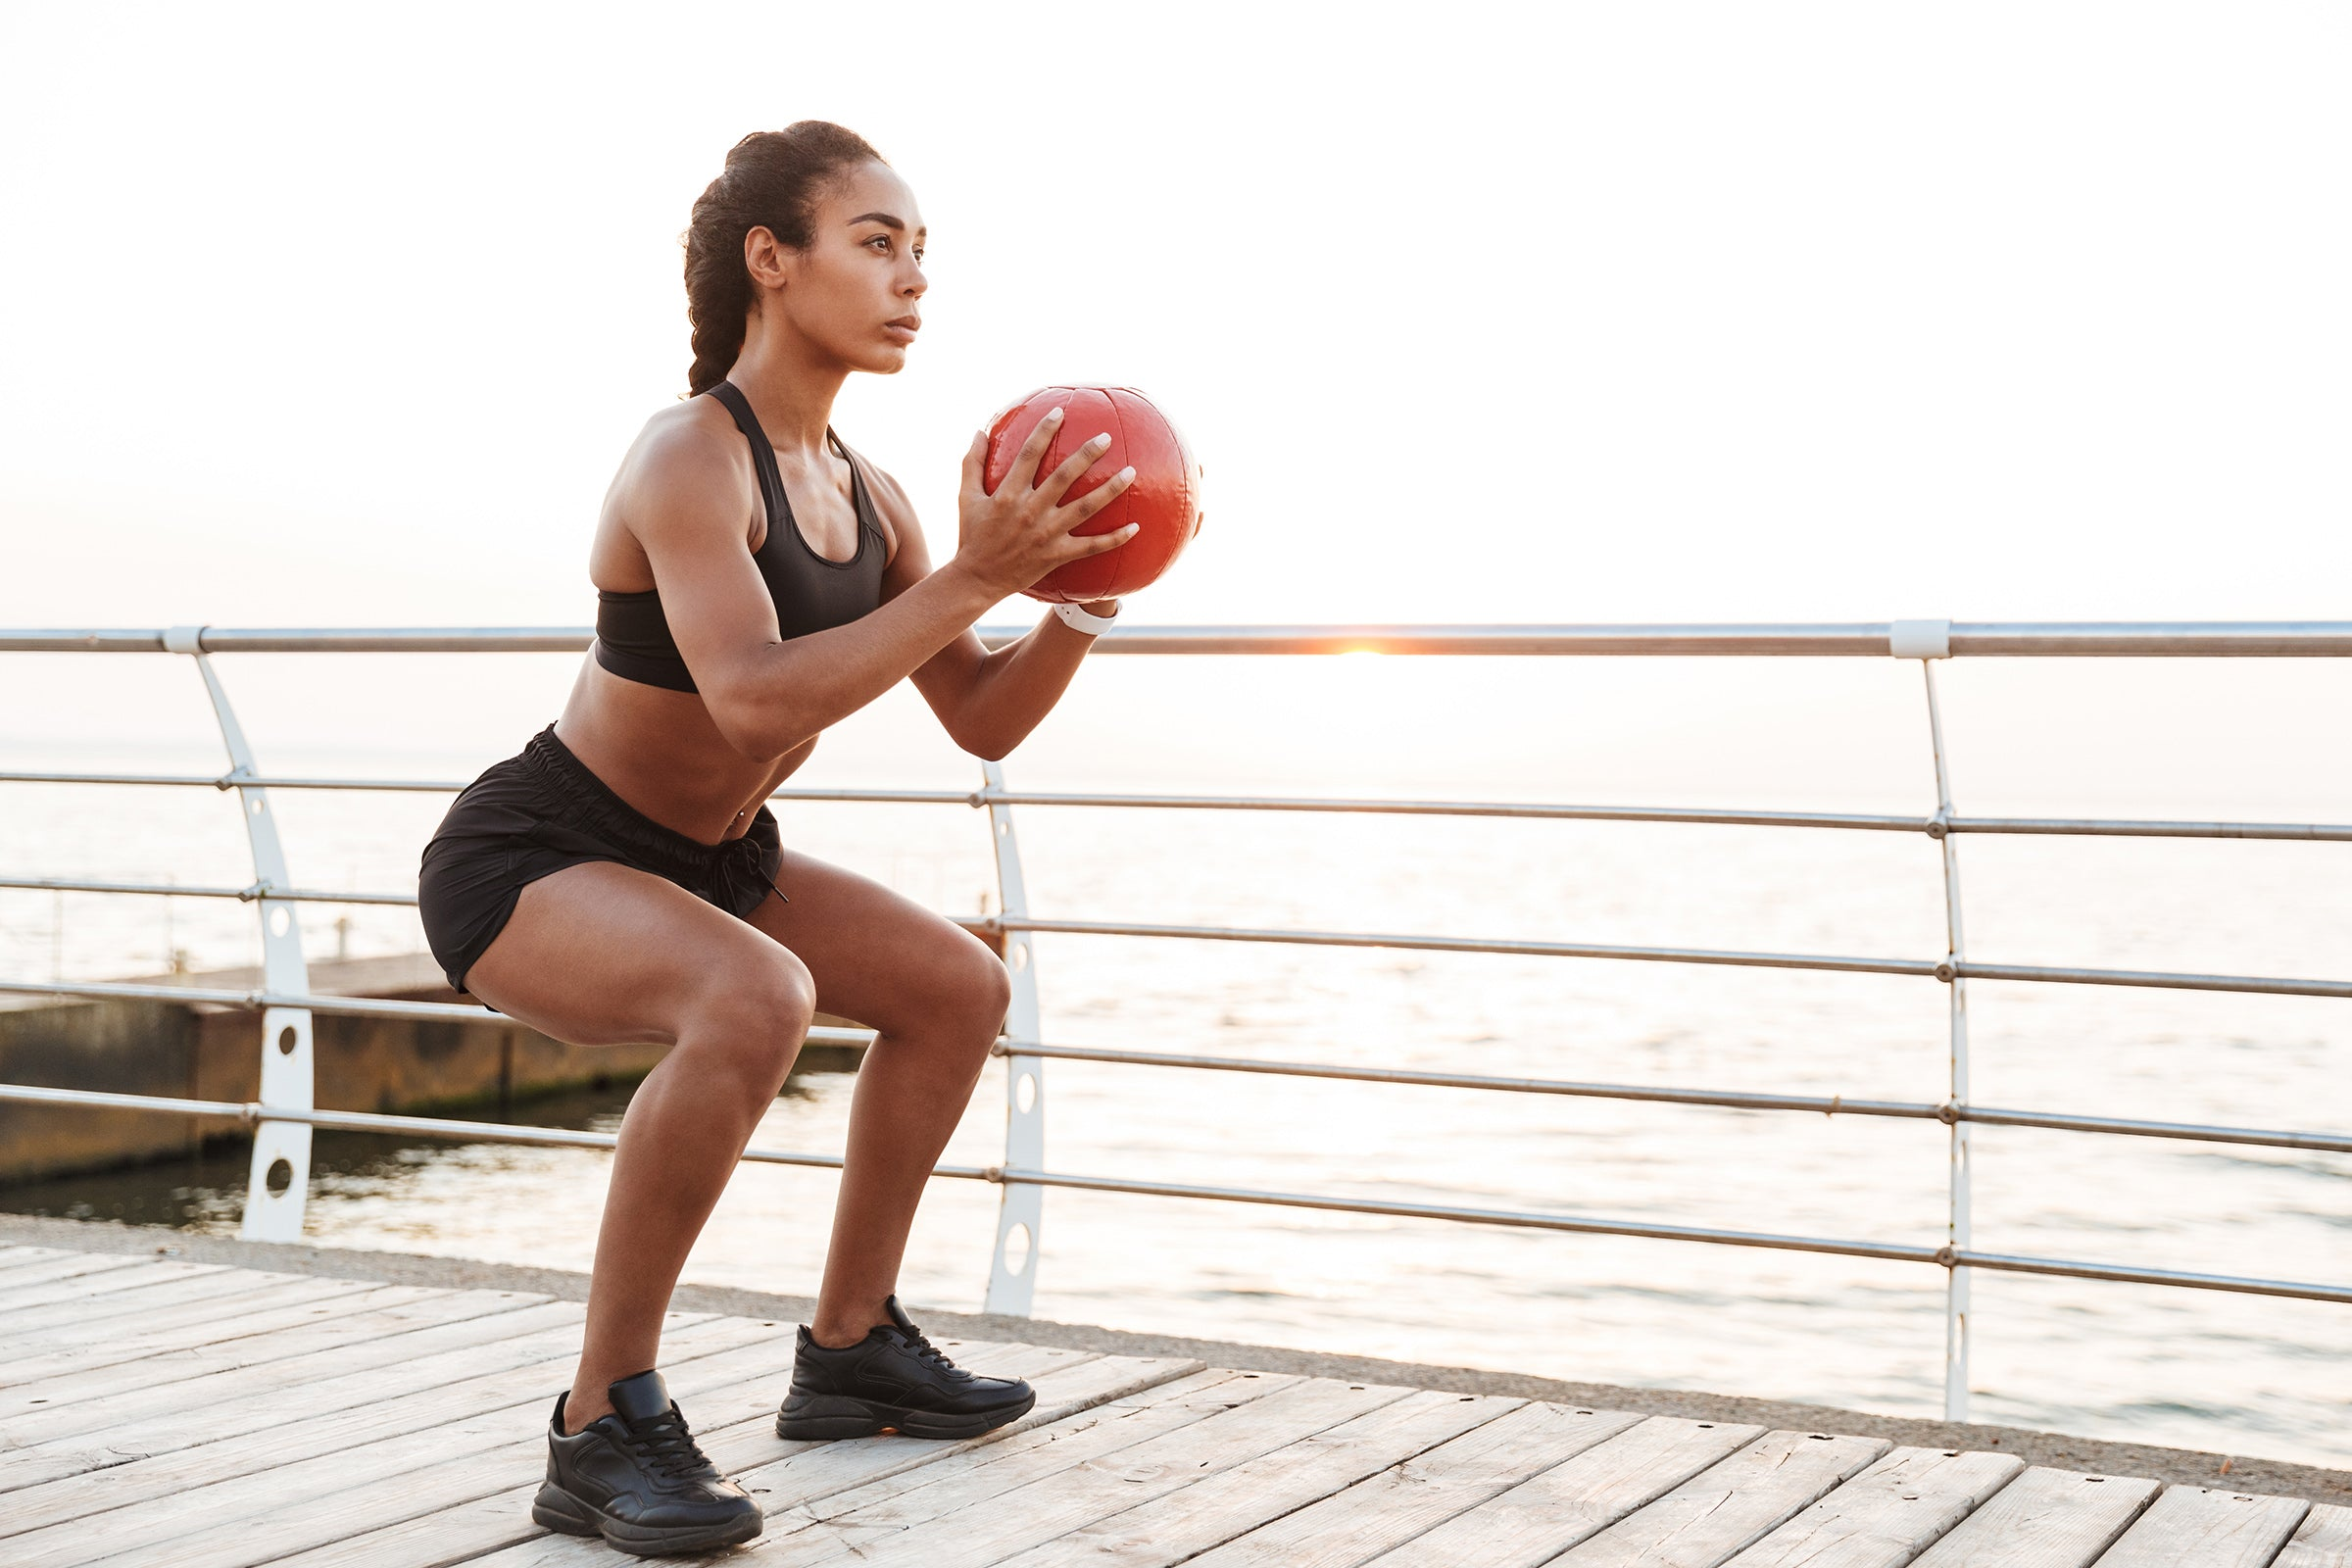 Women have a higher release of HGH in response to intense exercise than men, likely due to higher estrogen levels.